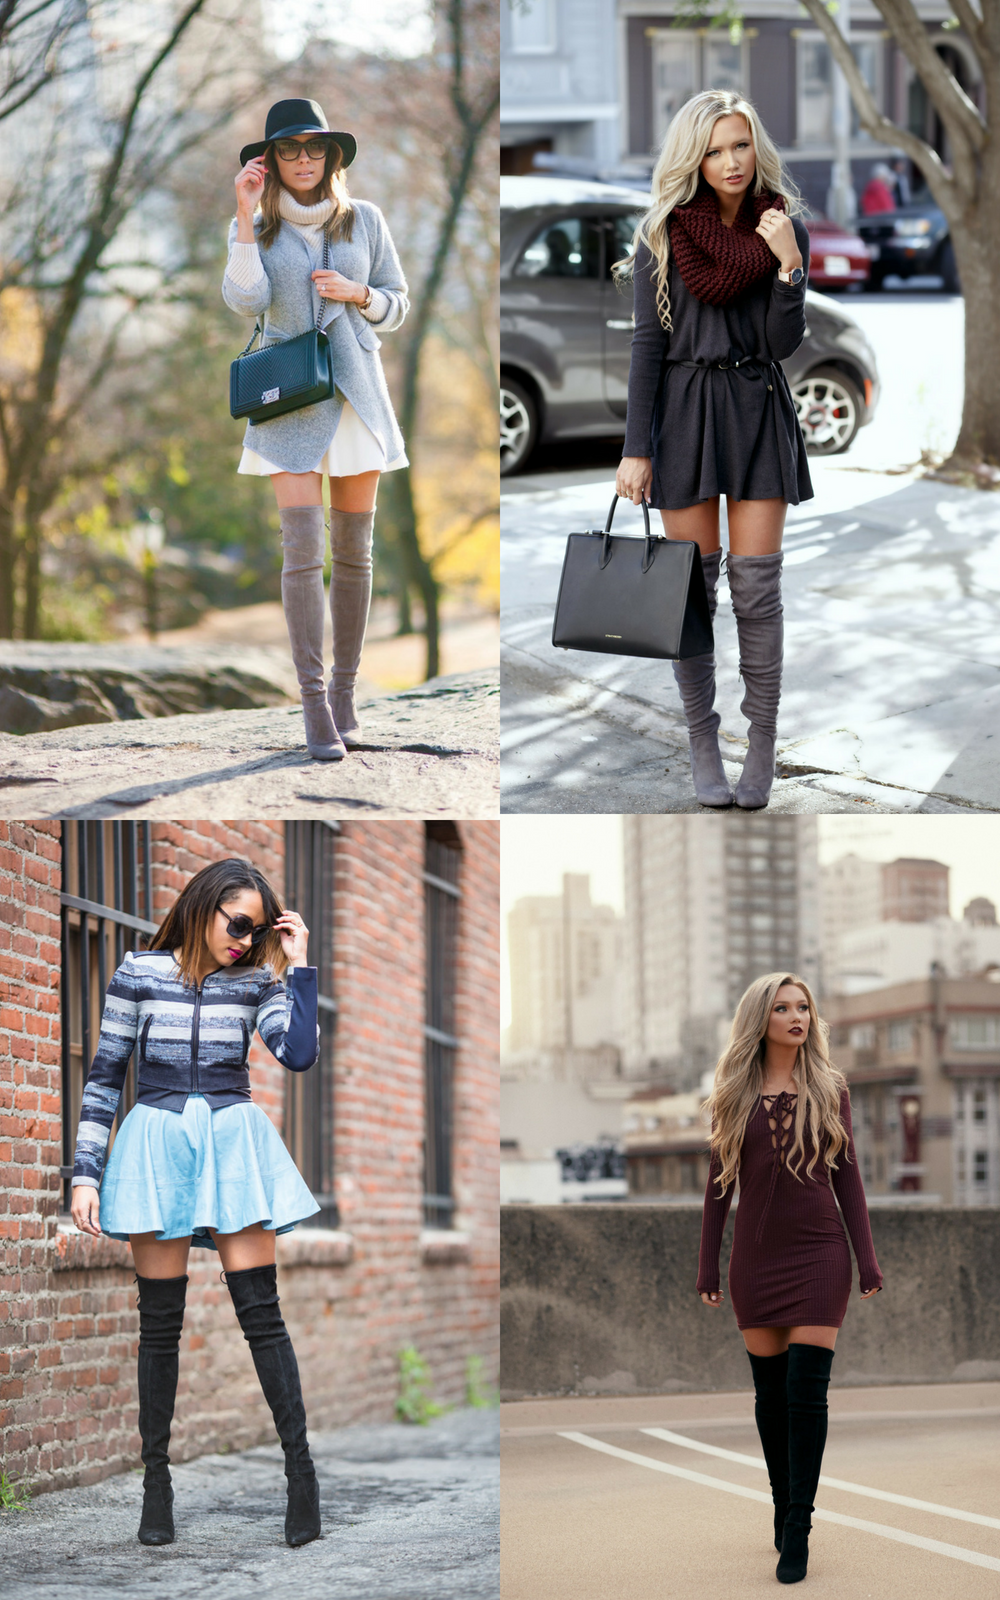 36 Trendy Fall Outfit Ideas For Women